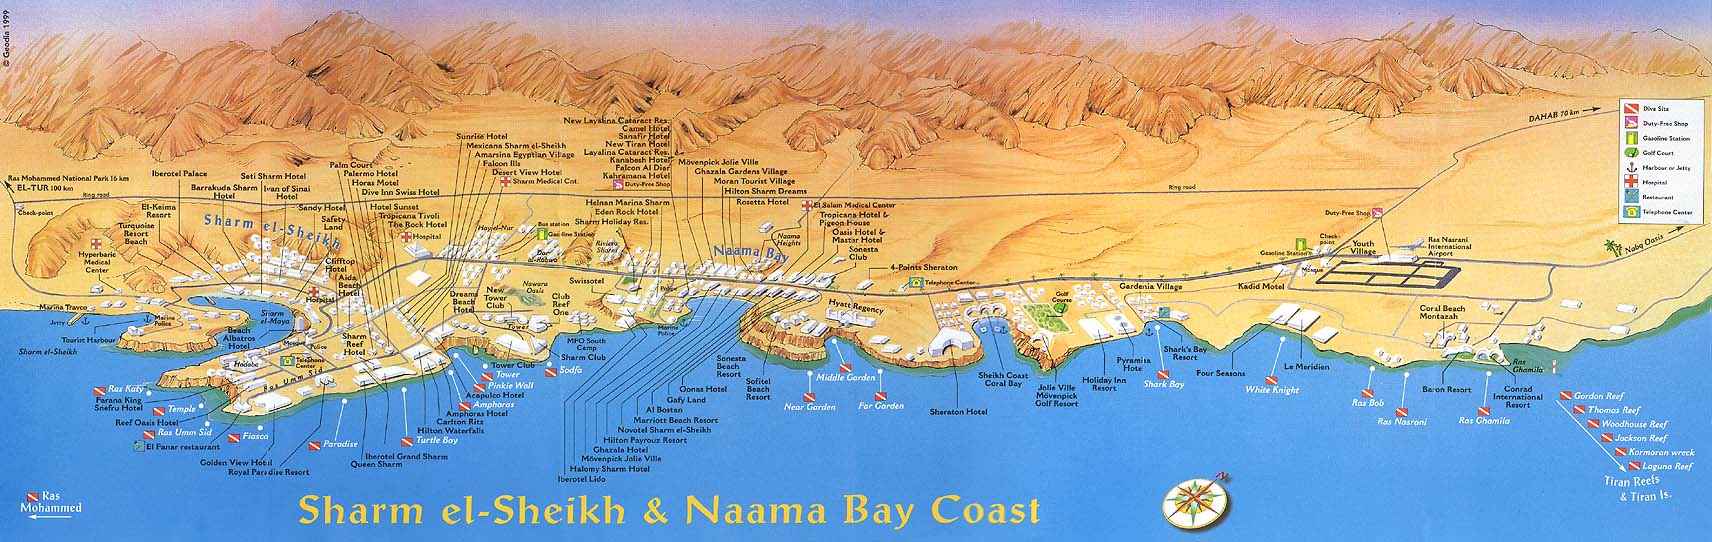 SharmElSheikh Sharm ElSheikh Egypt Detailed Towncity Map - Map of egypt hotels